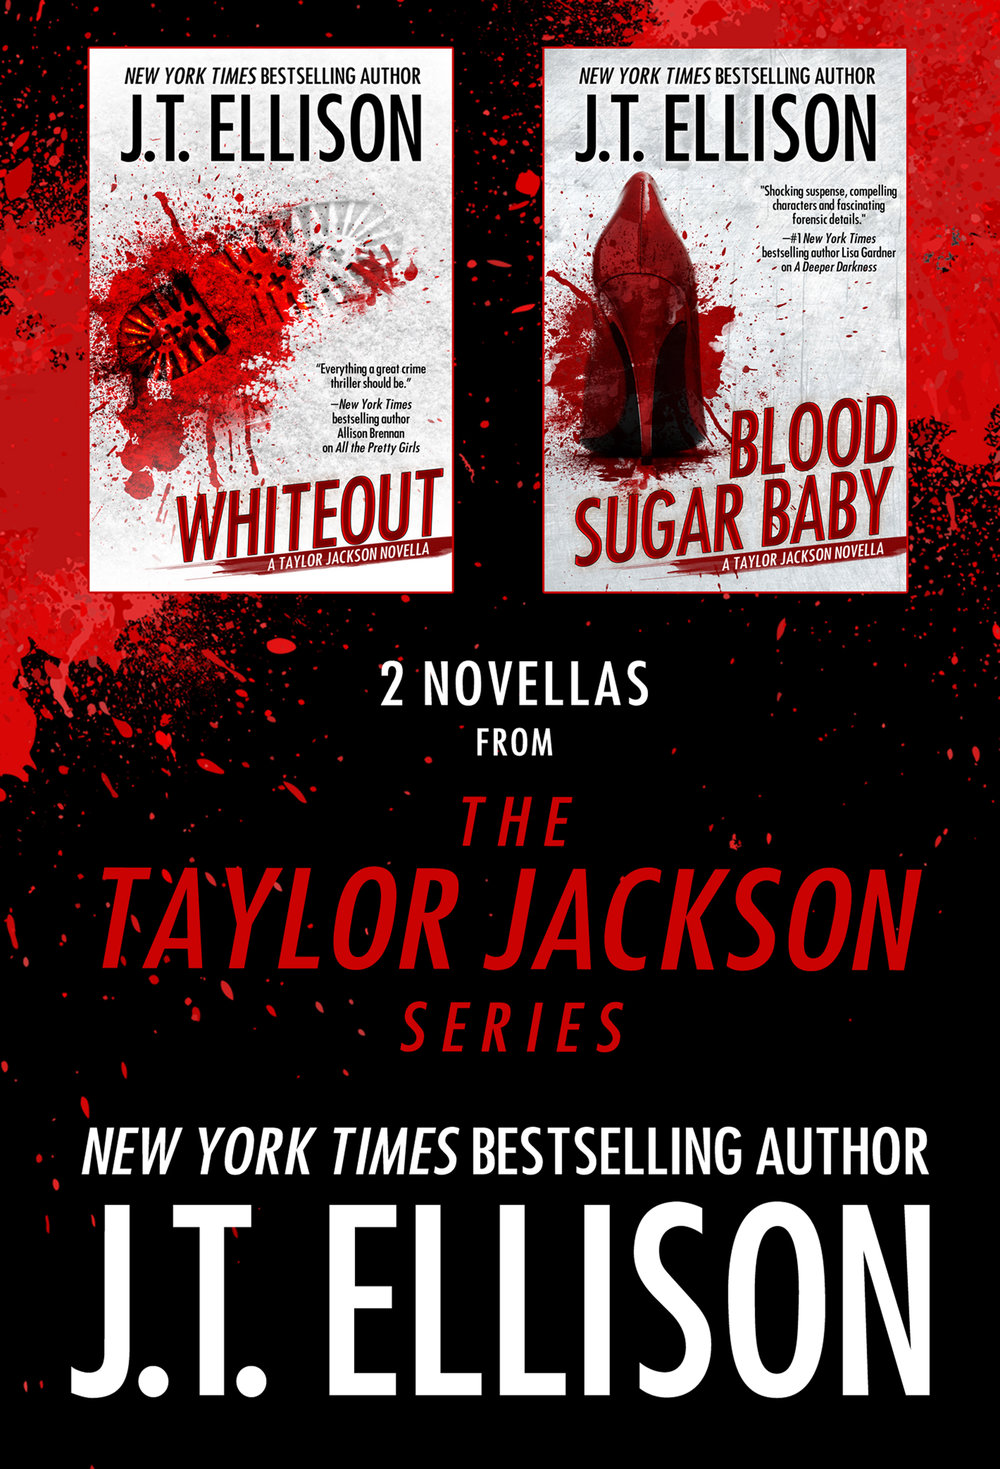 2 Novellas from the Taylor Jackson Series